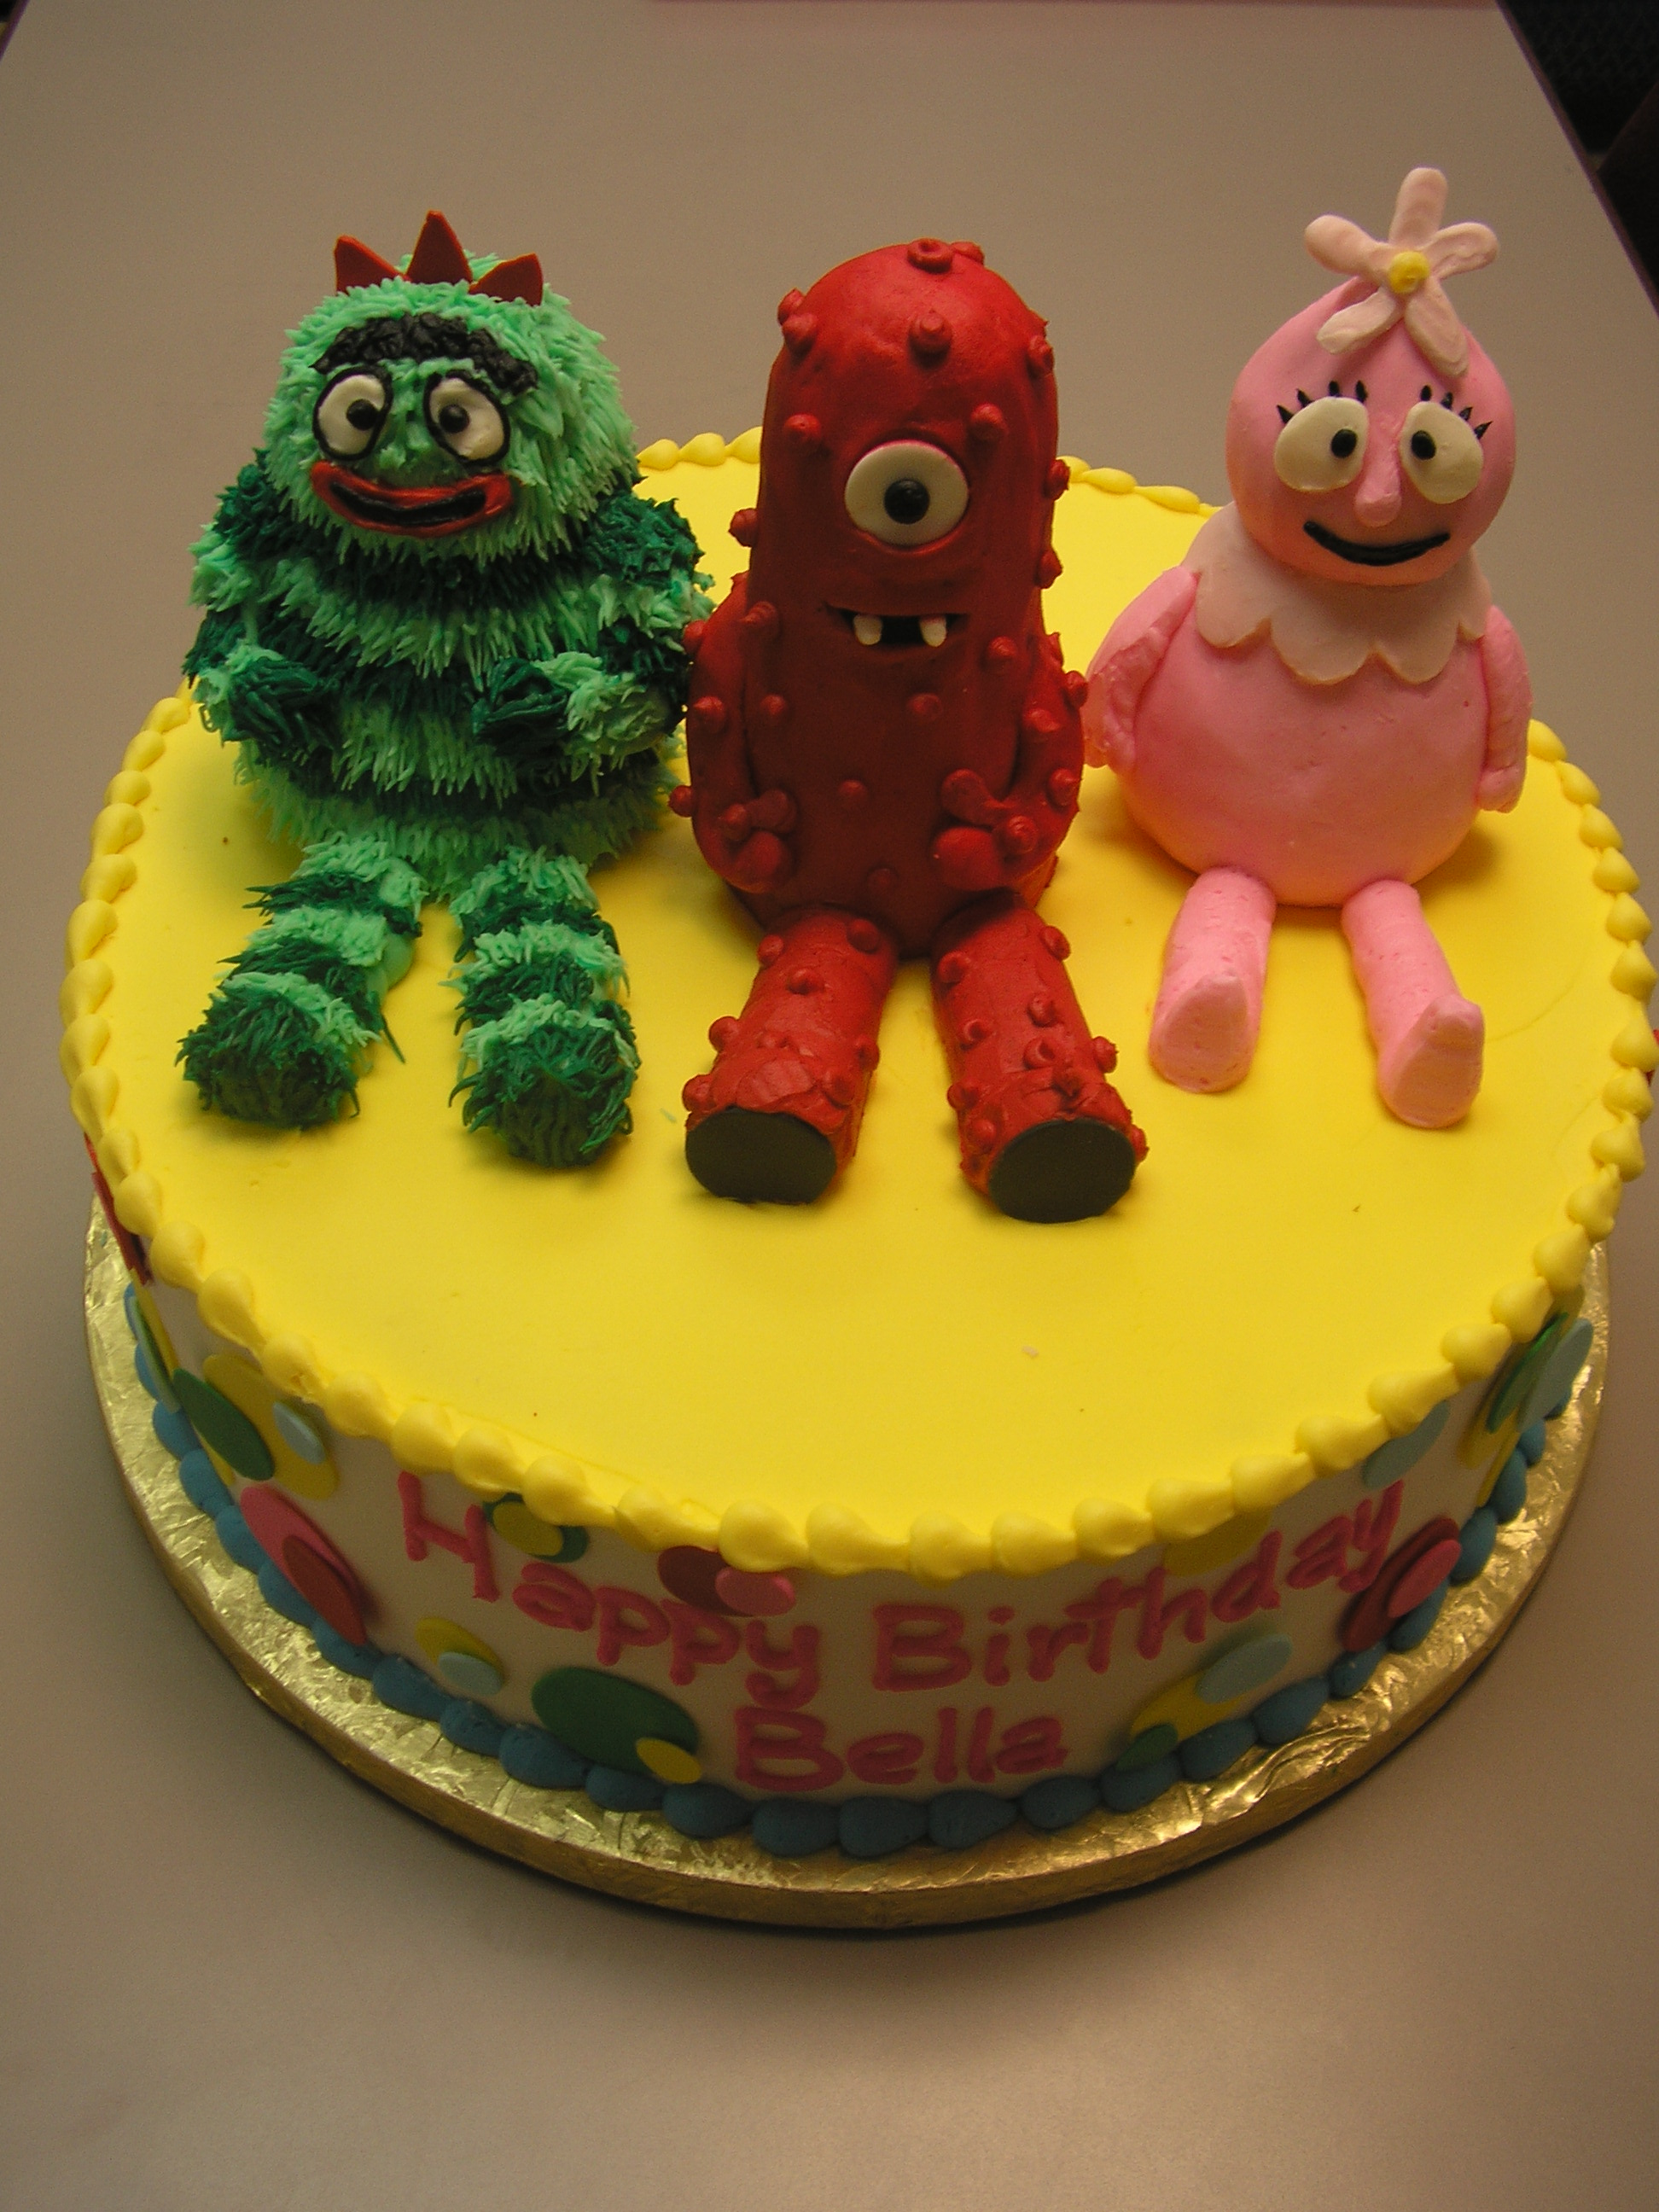 3D characters on a cake